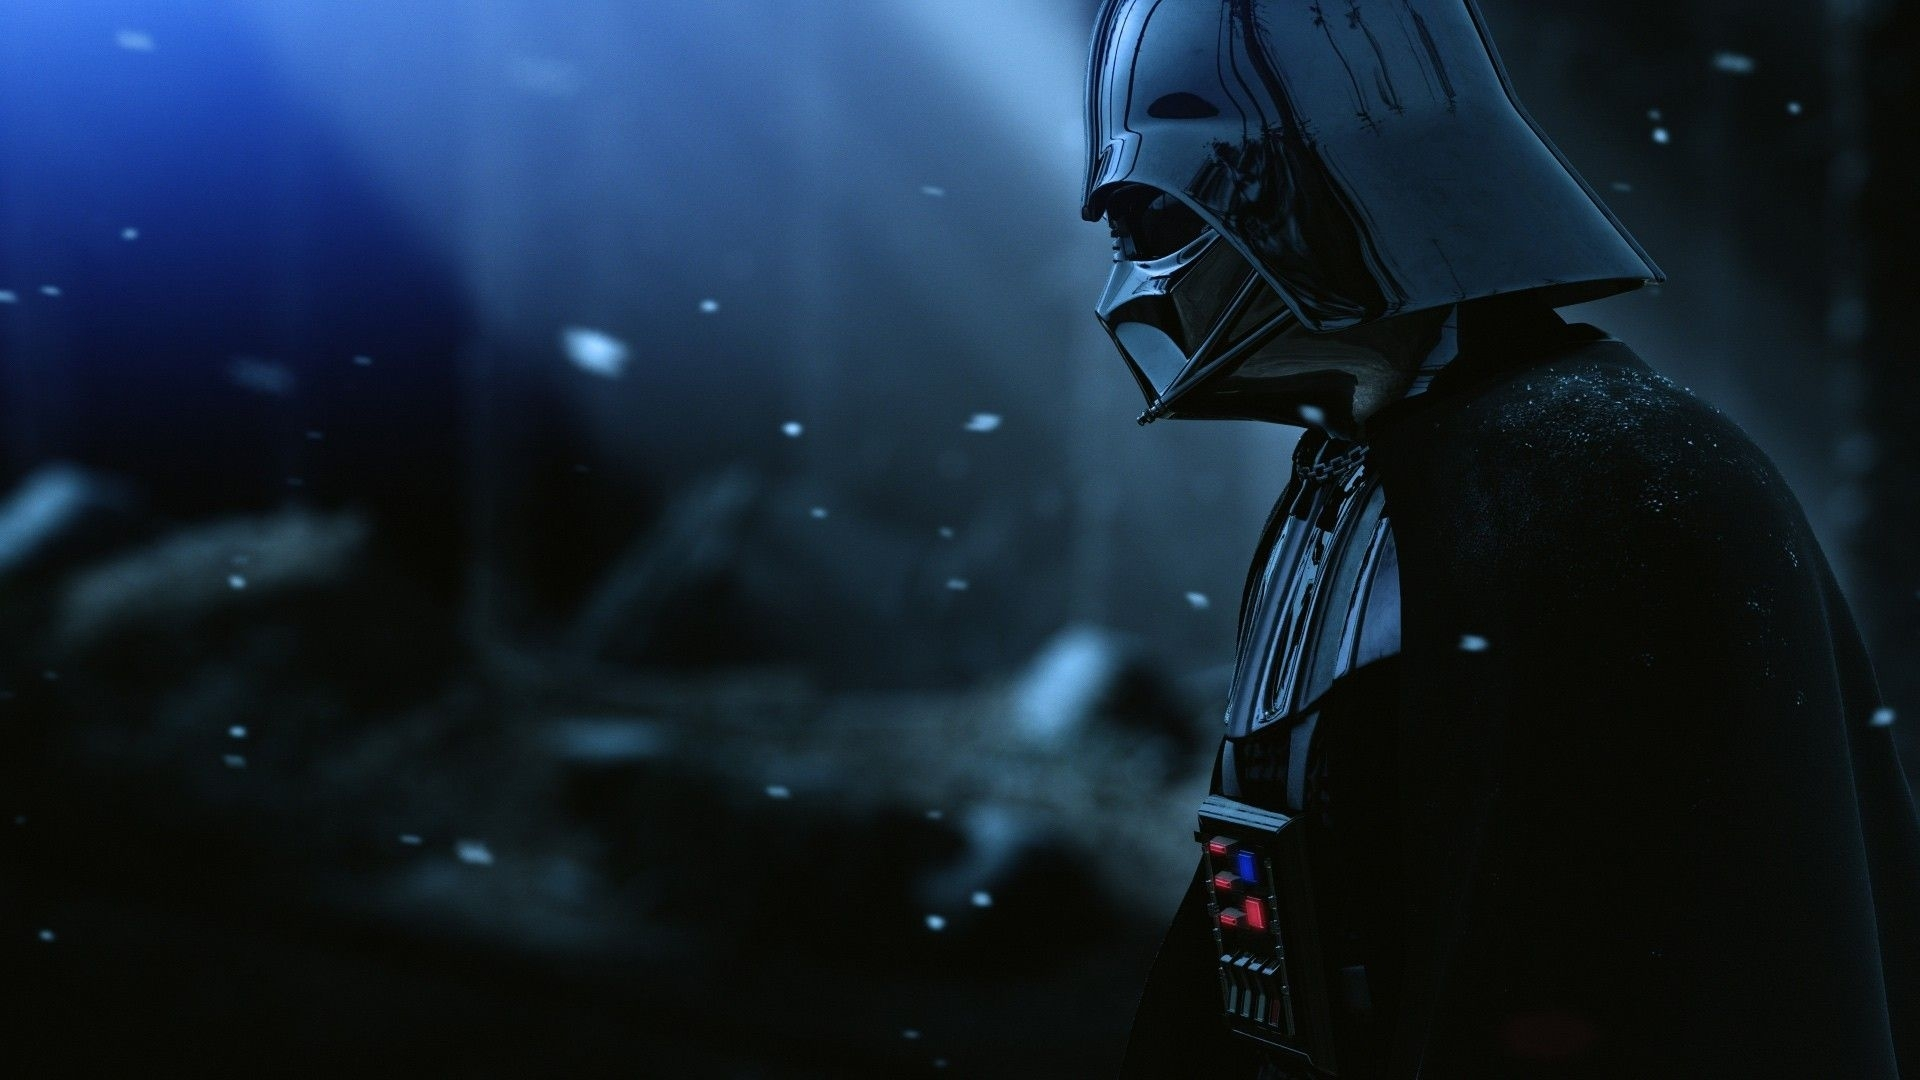 star wars hd desktop wallpaper 16995 - baltana